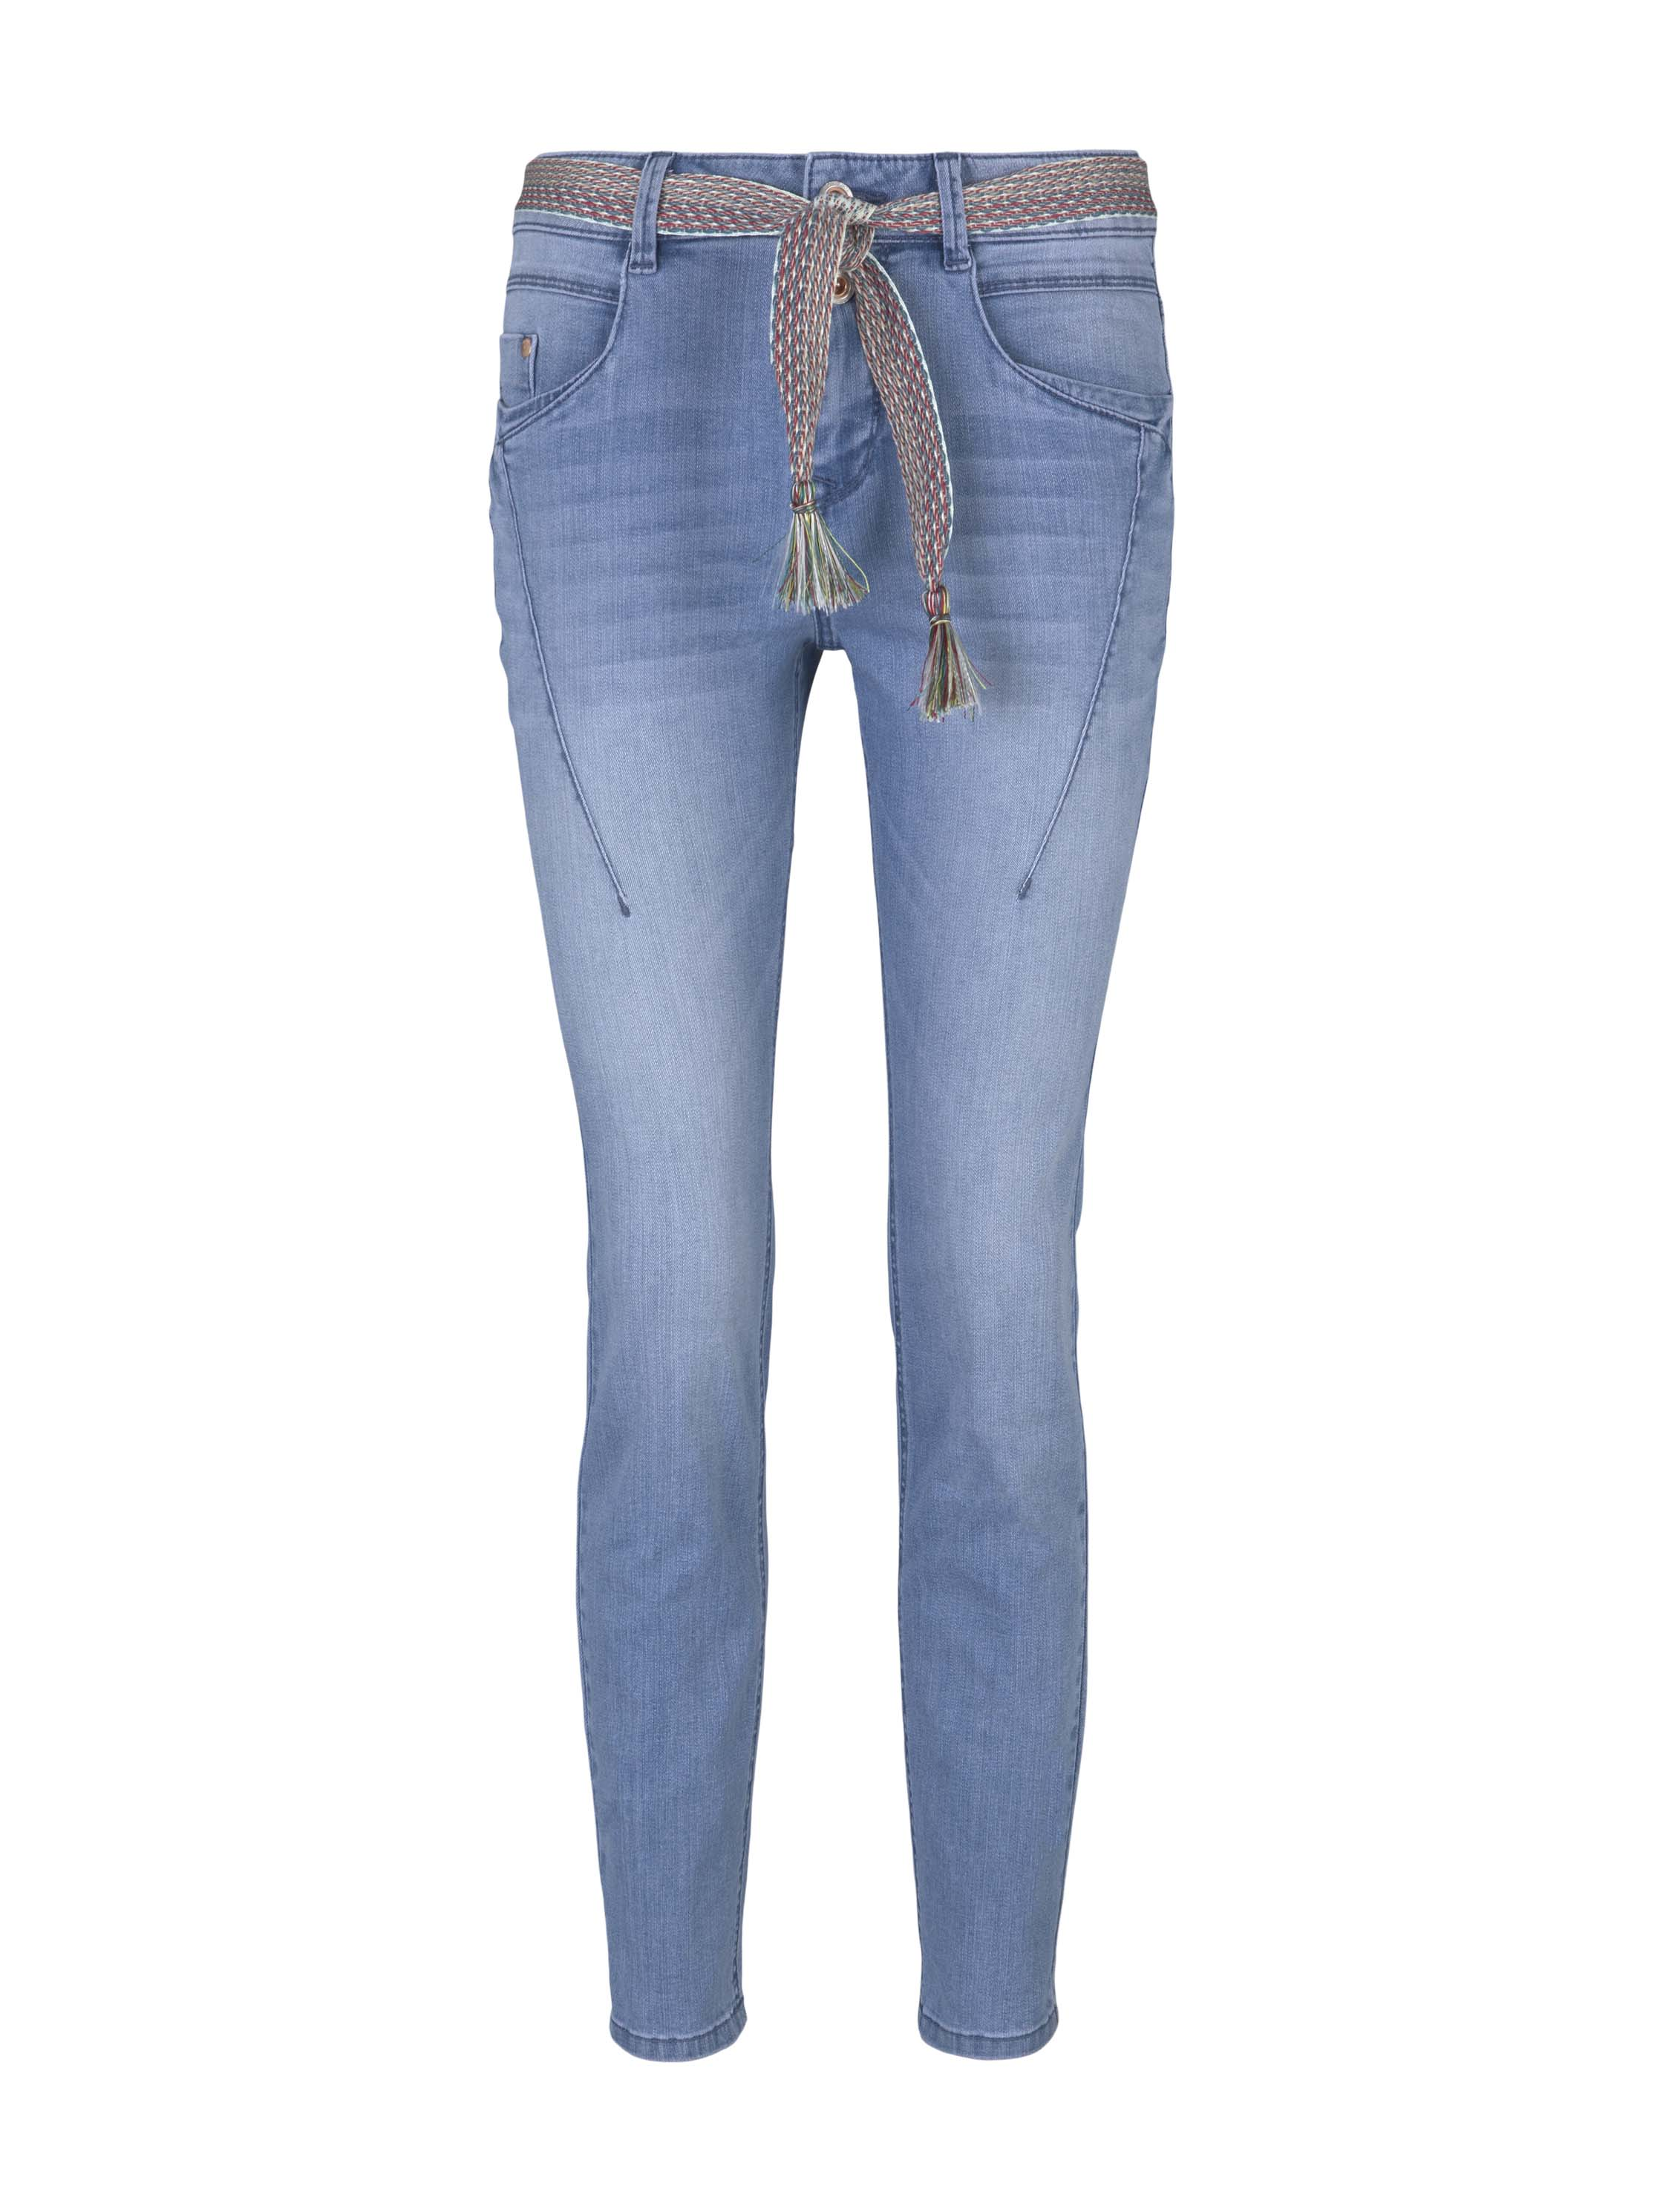 Tom Tailor Tapered relaxed Jeans, blau